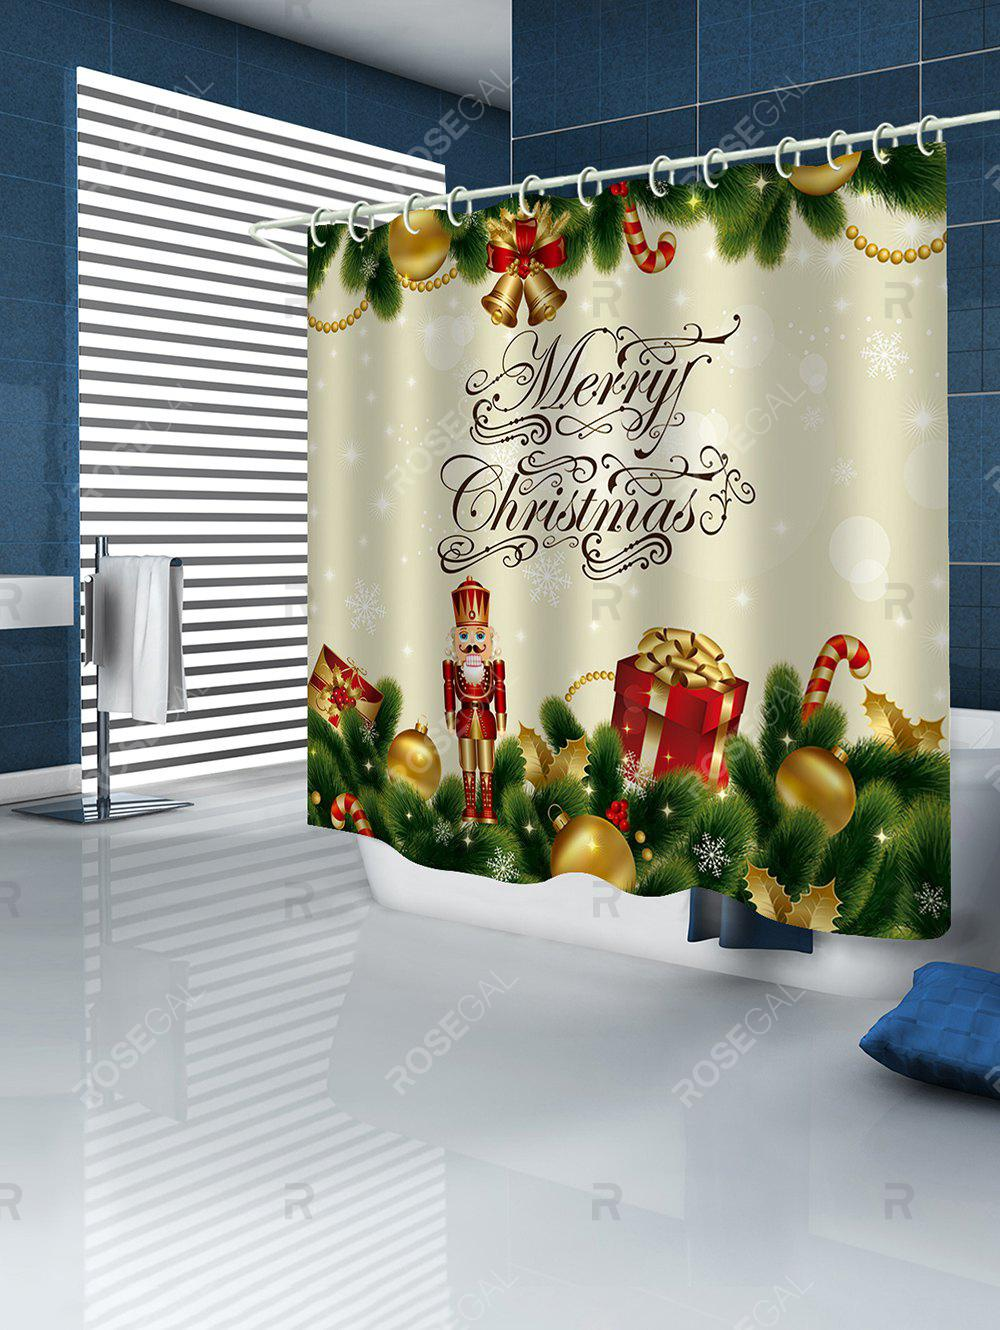 Buy Christmas Decorations Print Waterproof Bathroom Shower Curtain